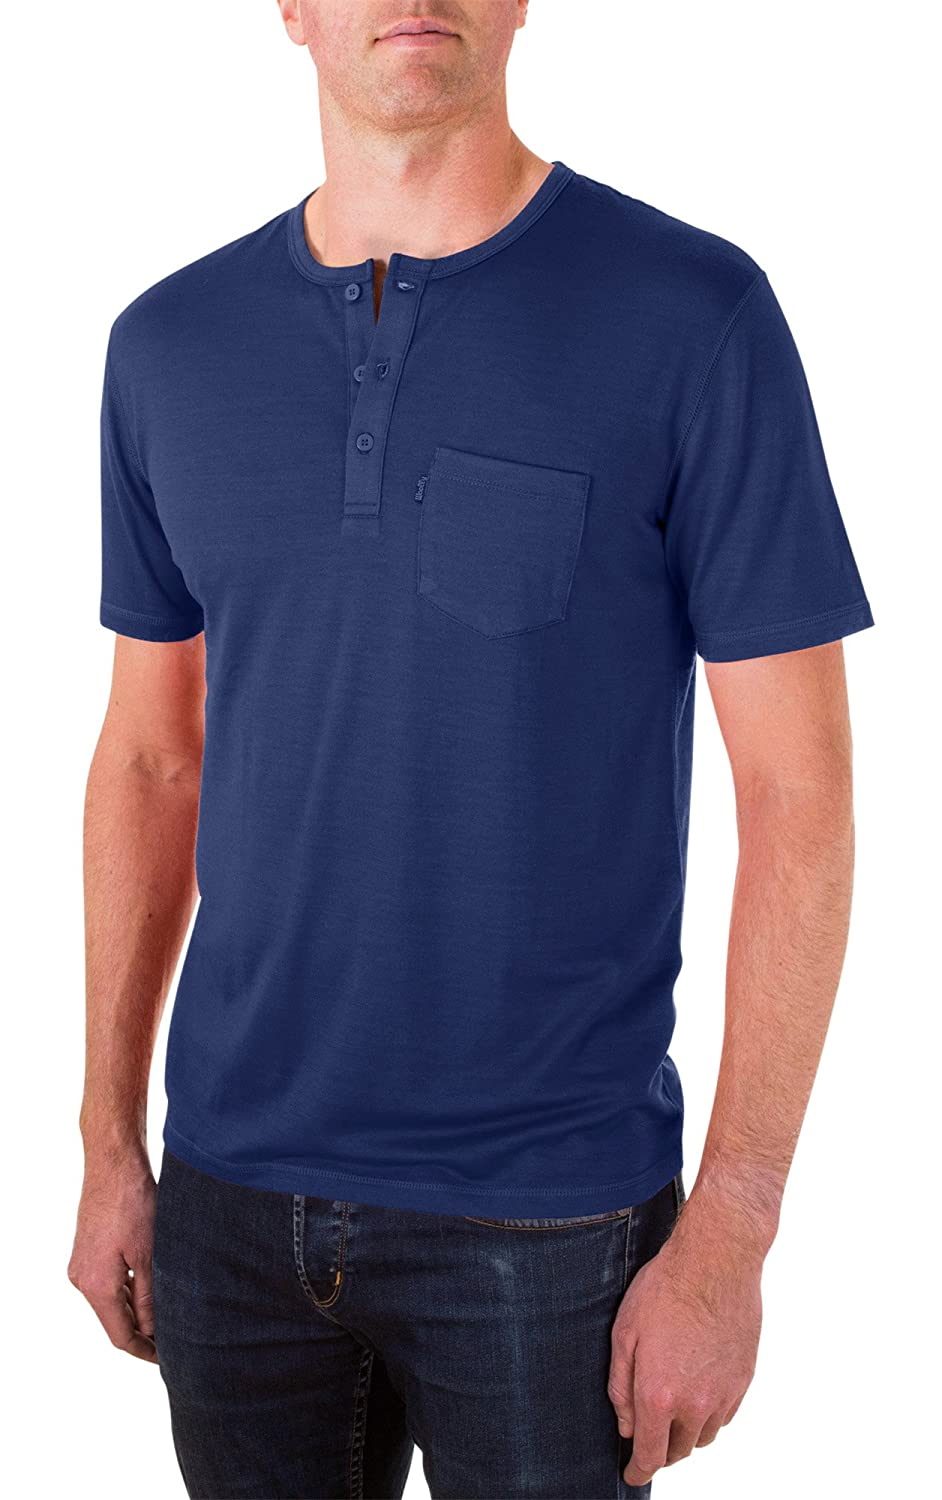 Woolly Clothing Men's Merino Wool Henley Tee Shirt - Everyday Weight - Wicking Breathable Anti-Odor henley-short-parent